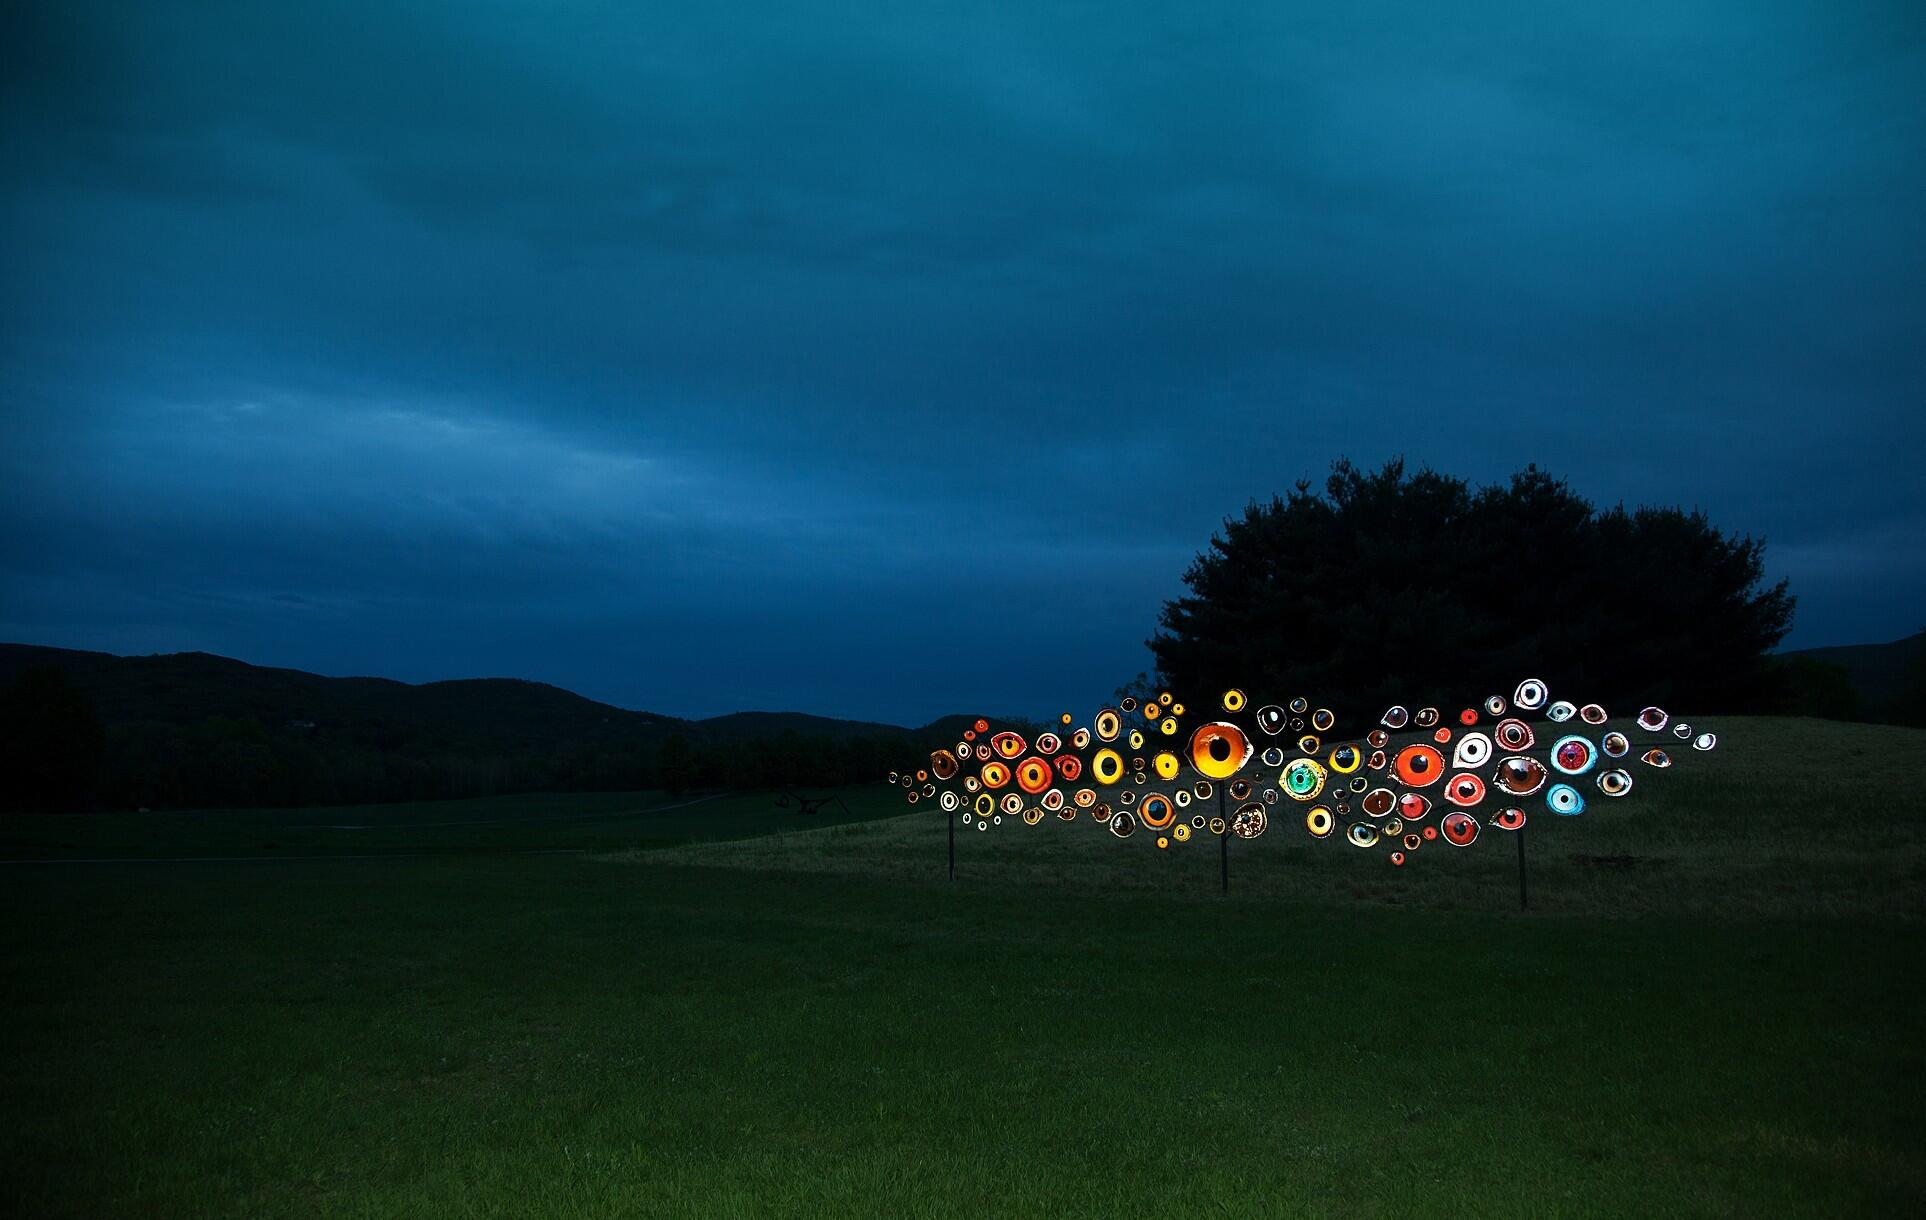 """Jenny Kendler's installation """"Birds Watching"""" at the Storm King Art Center is part of the 2018 special exhibit """"Indicators: Artists on Climate Change."""" Jenny Kendler"""